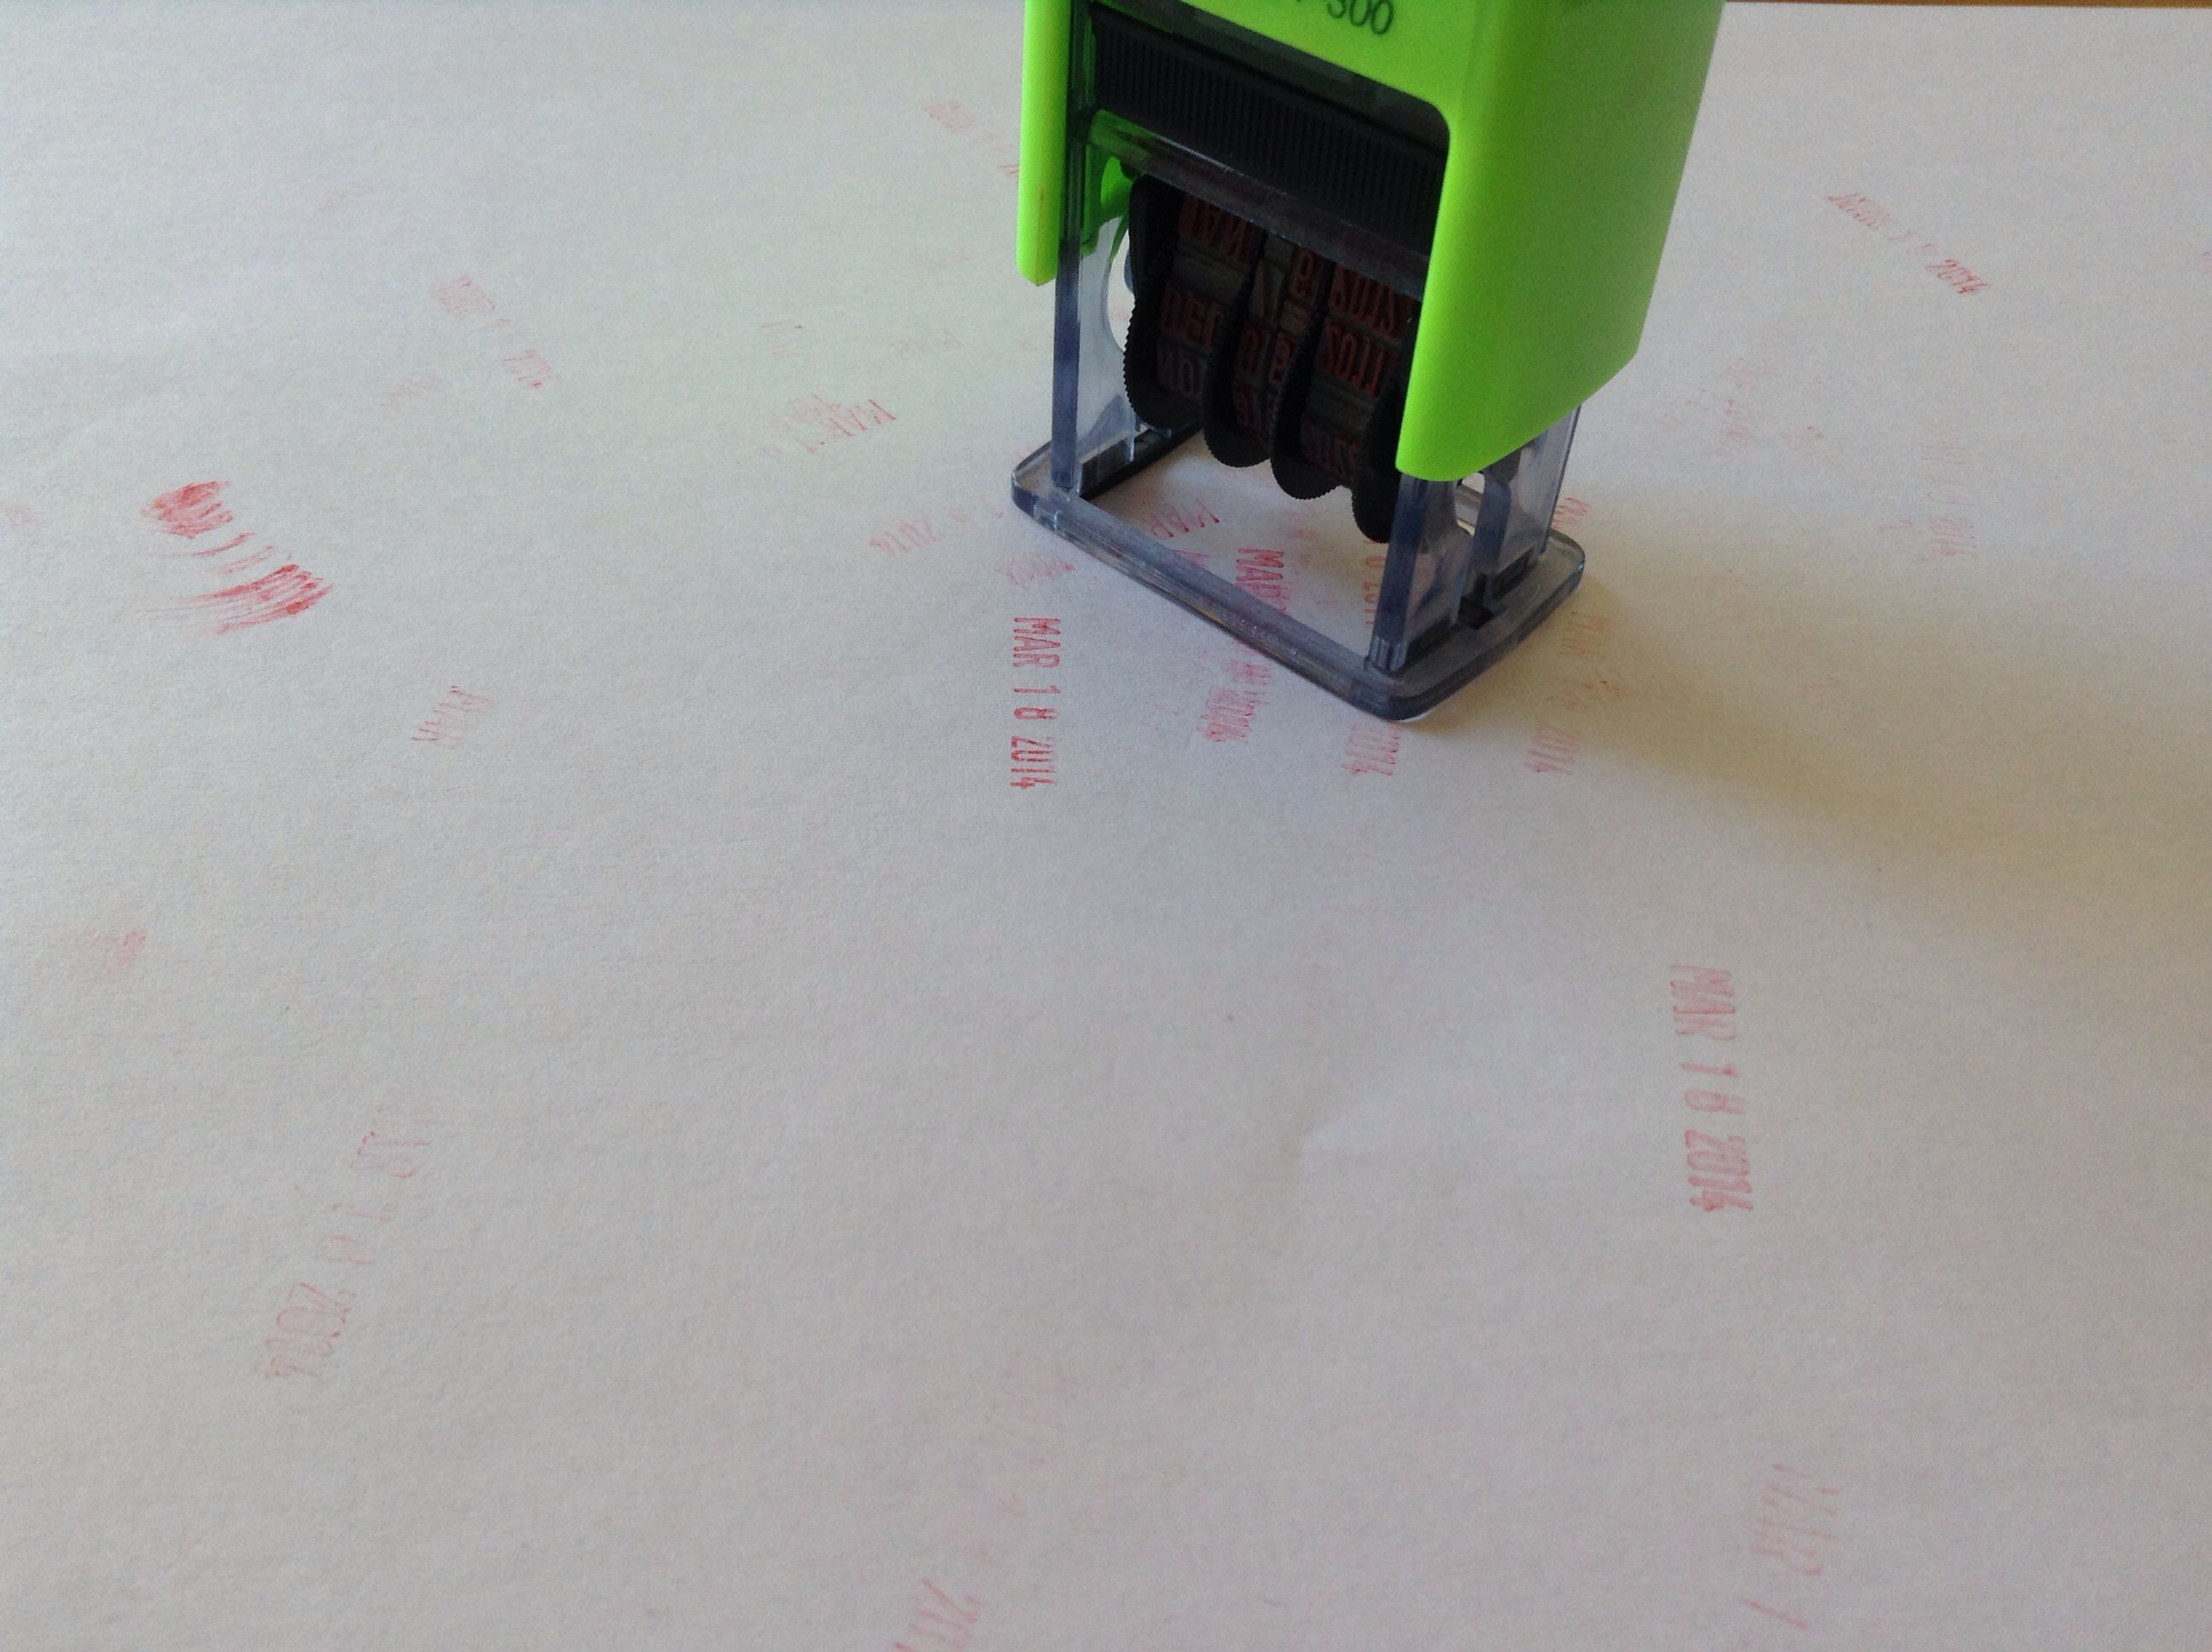 Picture of Stamp Multiple Times Until the Remaining Ink Runs Out.